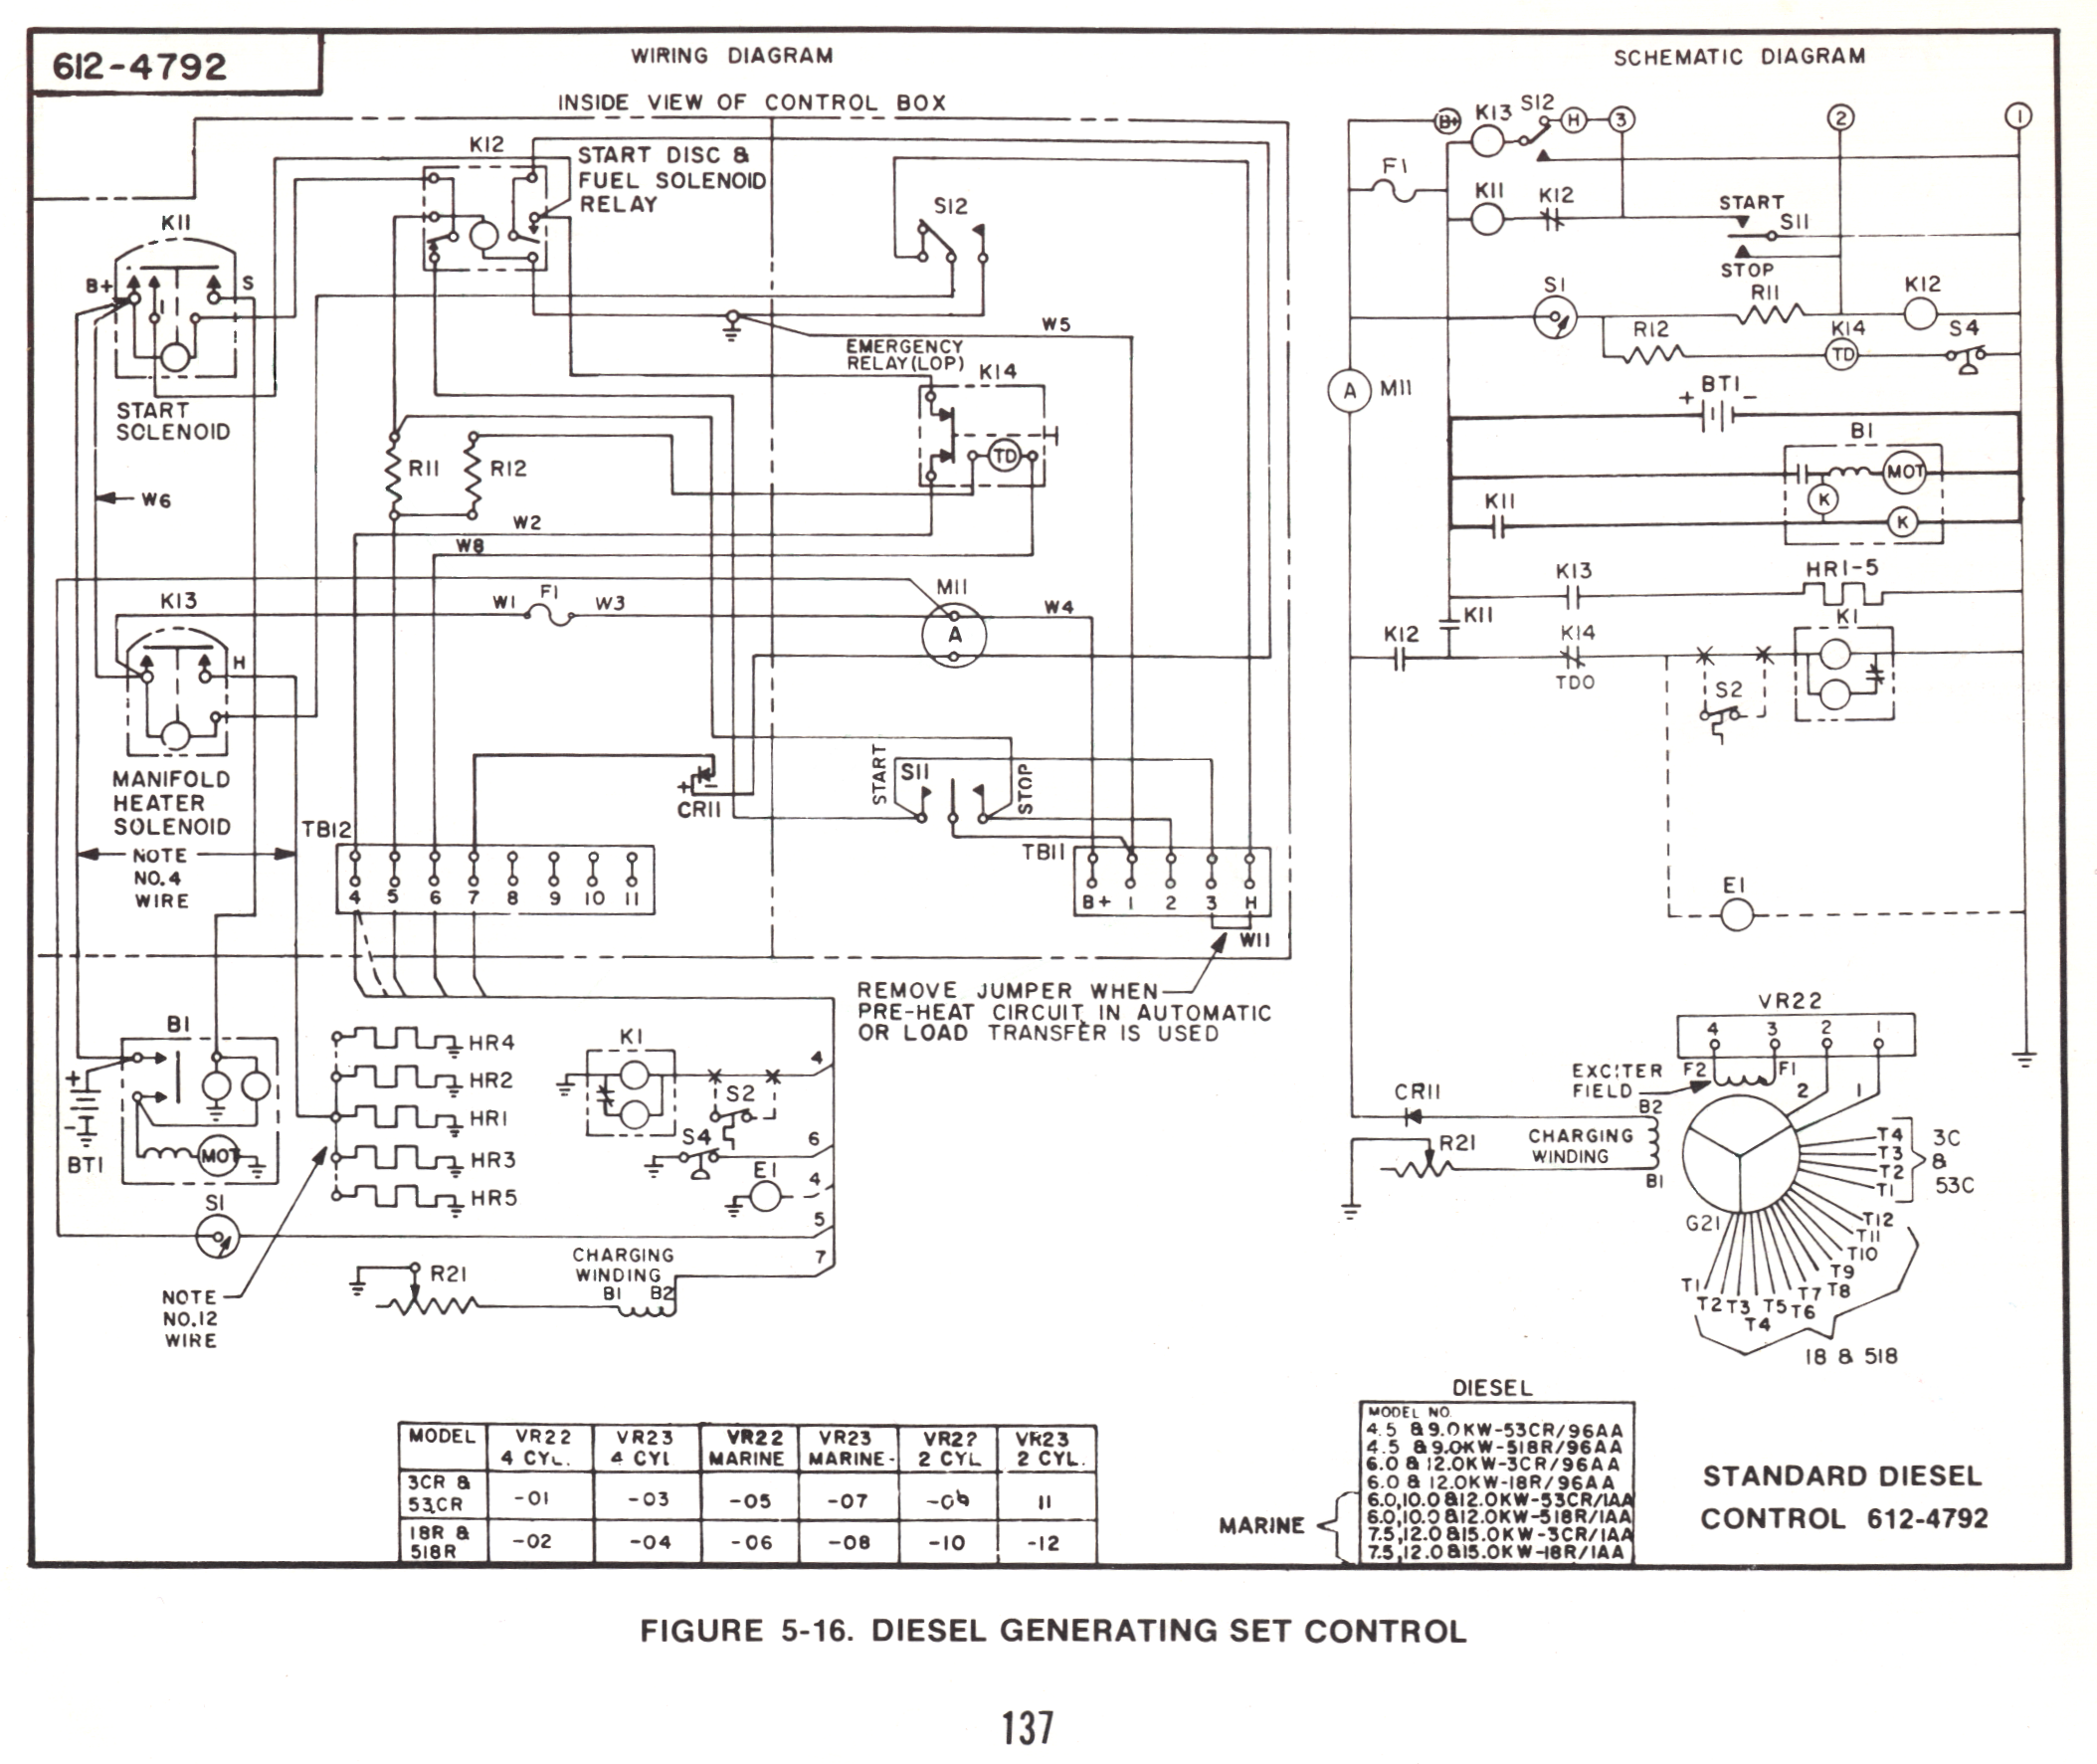 Onan_Diesel_Controls_612 4792_b onan stuff onan 5500 rv generator wiring diagram at reclaimingppi.co